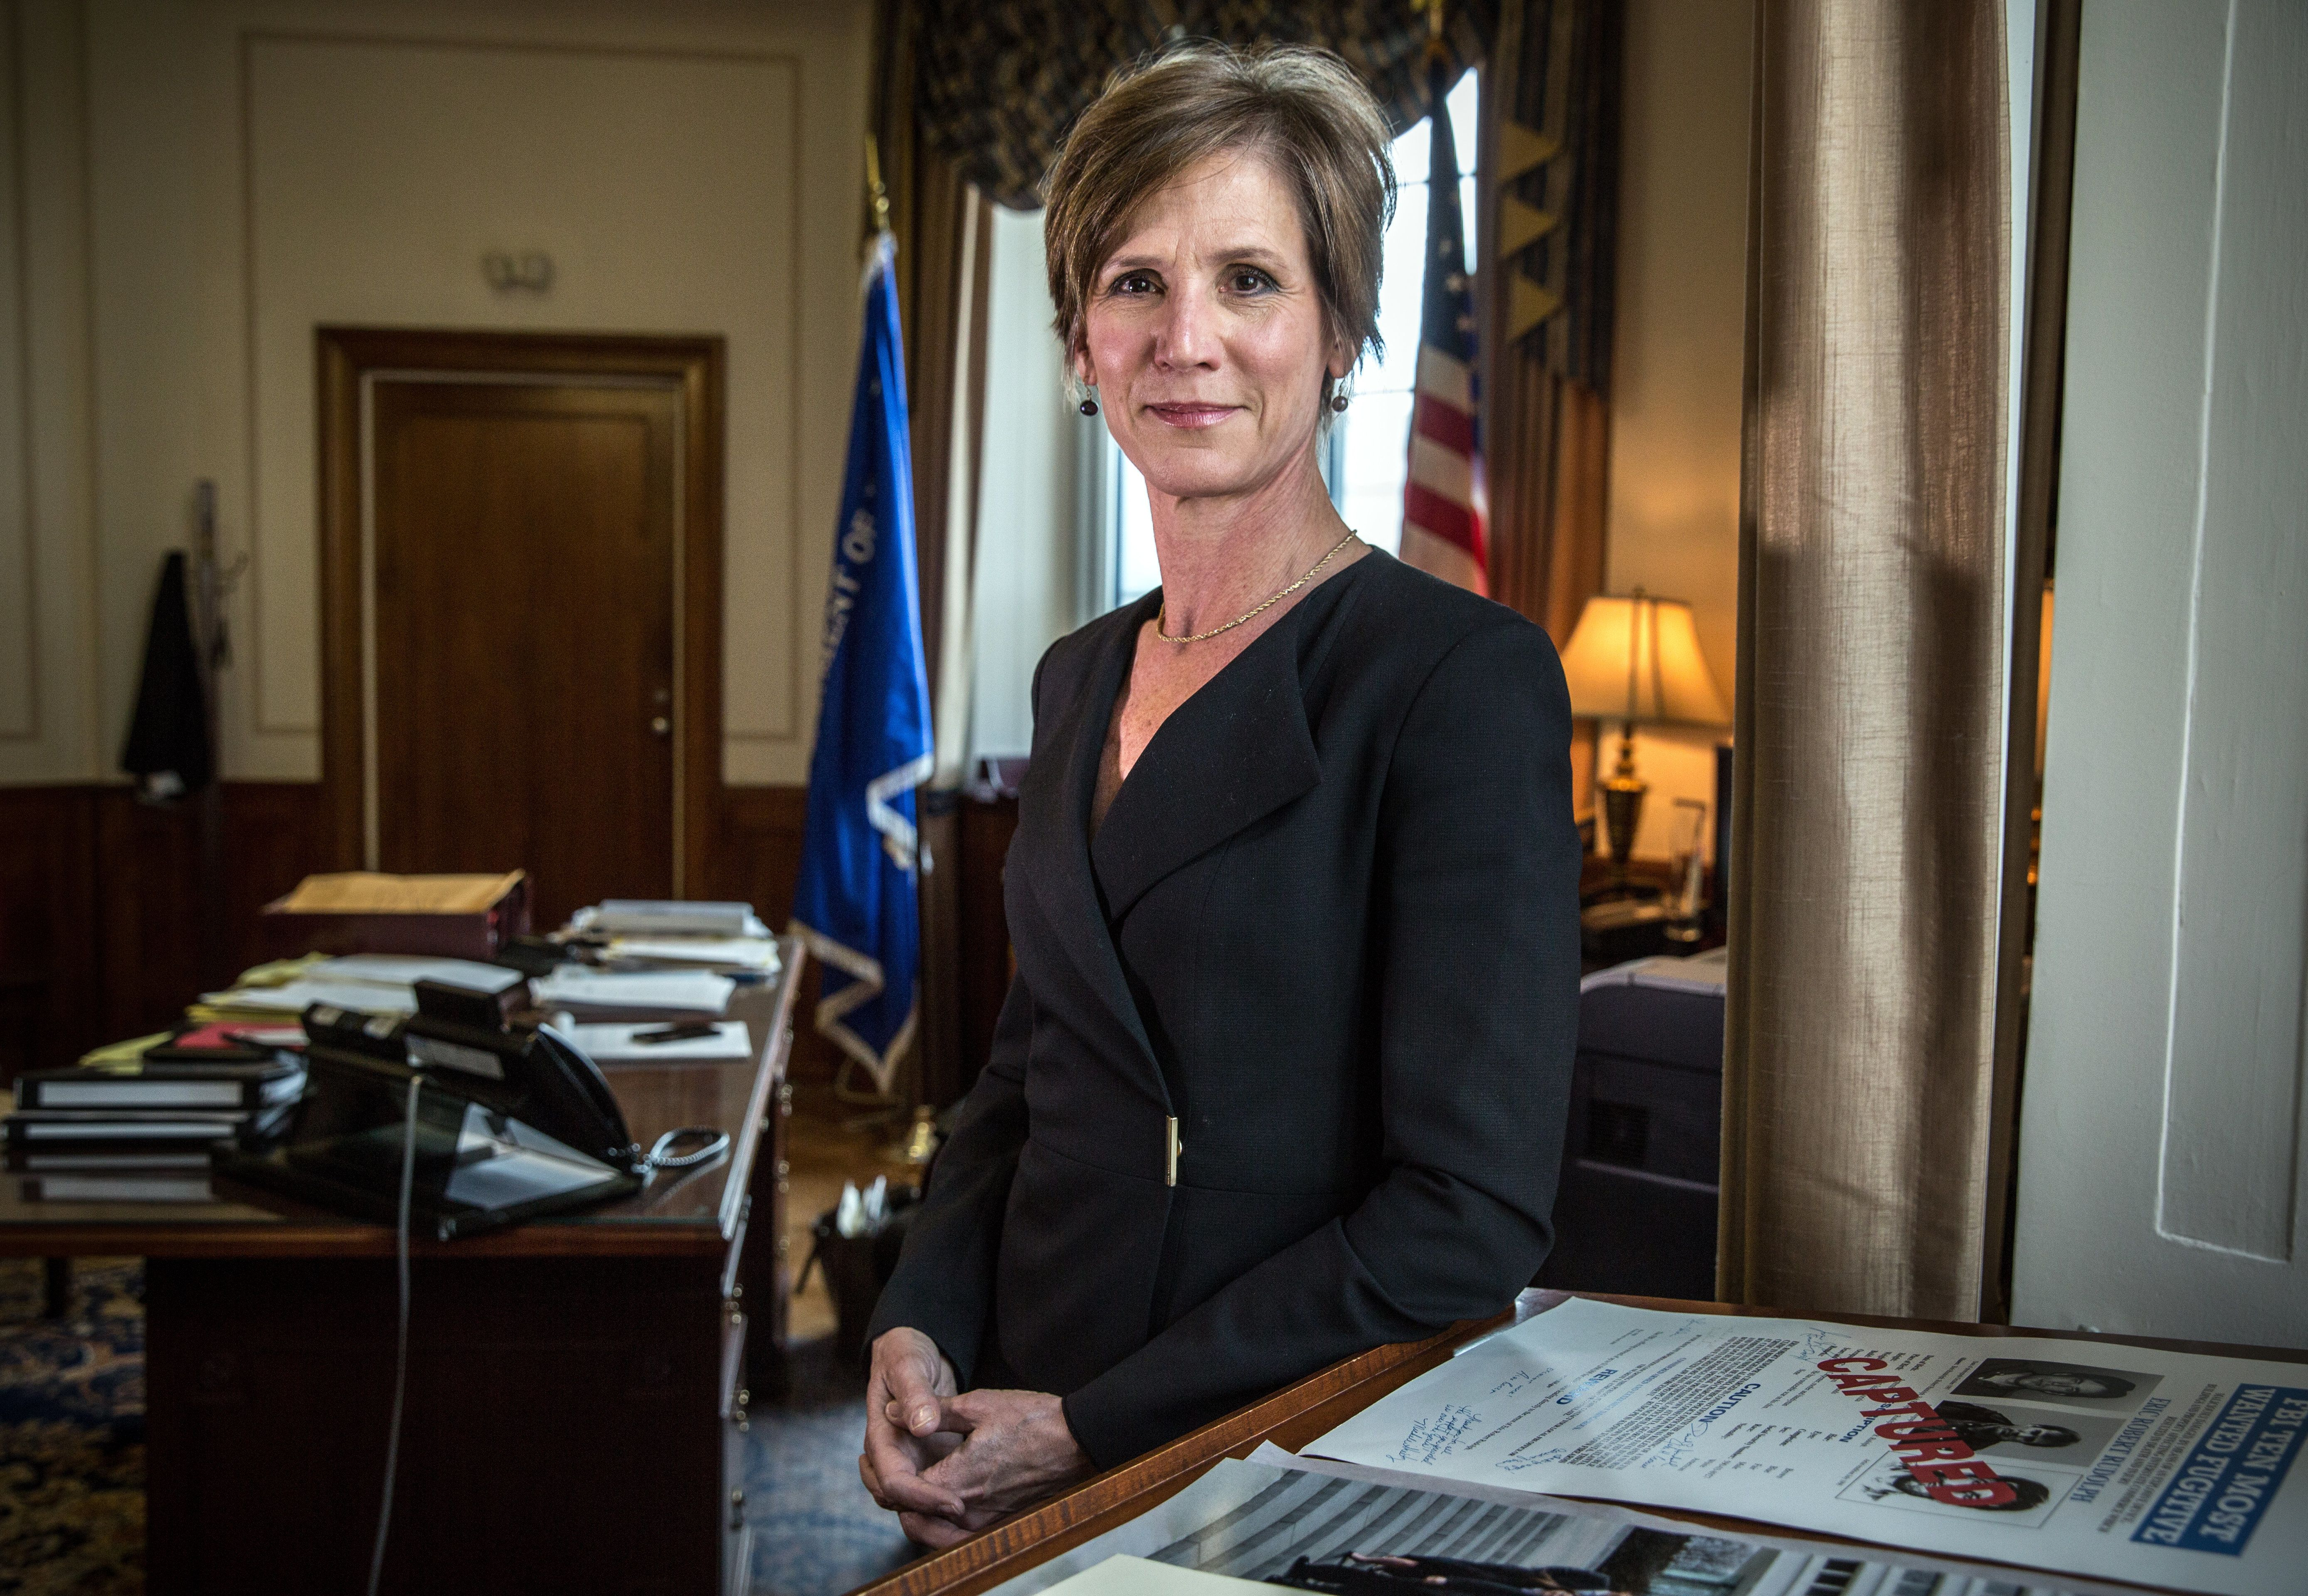 WASHINGTON, DC - MAY15: Deputy Attorney General Sally Yates, in her office at the Justice Department, May 15, 2015, in Washington, DC.  Yates, who was confirmed by the Senate yesterday, is a former career prosecutor from Atlanta. (Photo by Evelyn Hockstein/For The Washington Post via Getty Images)